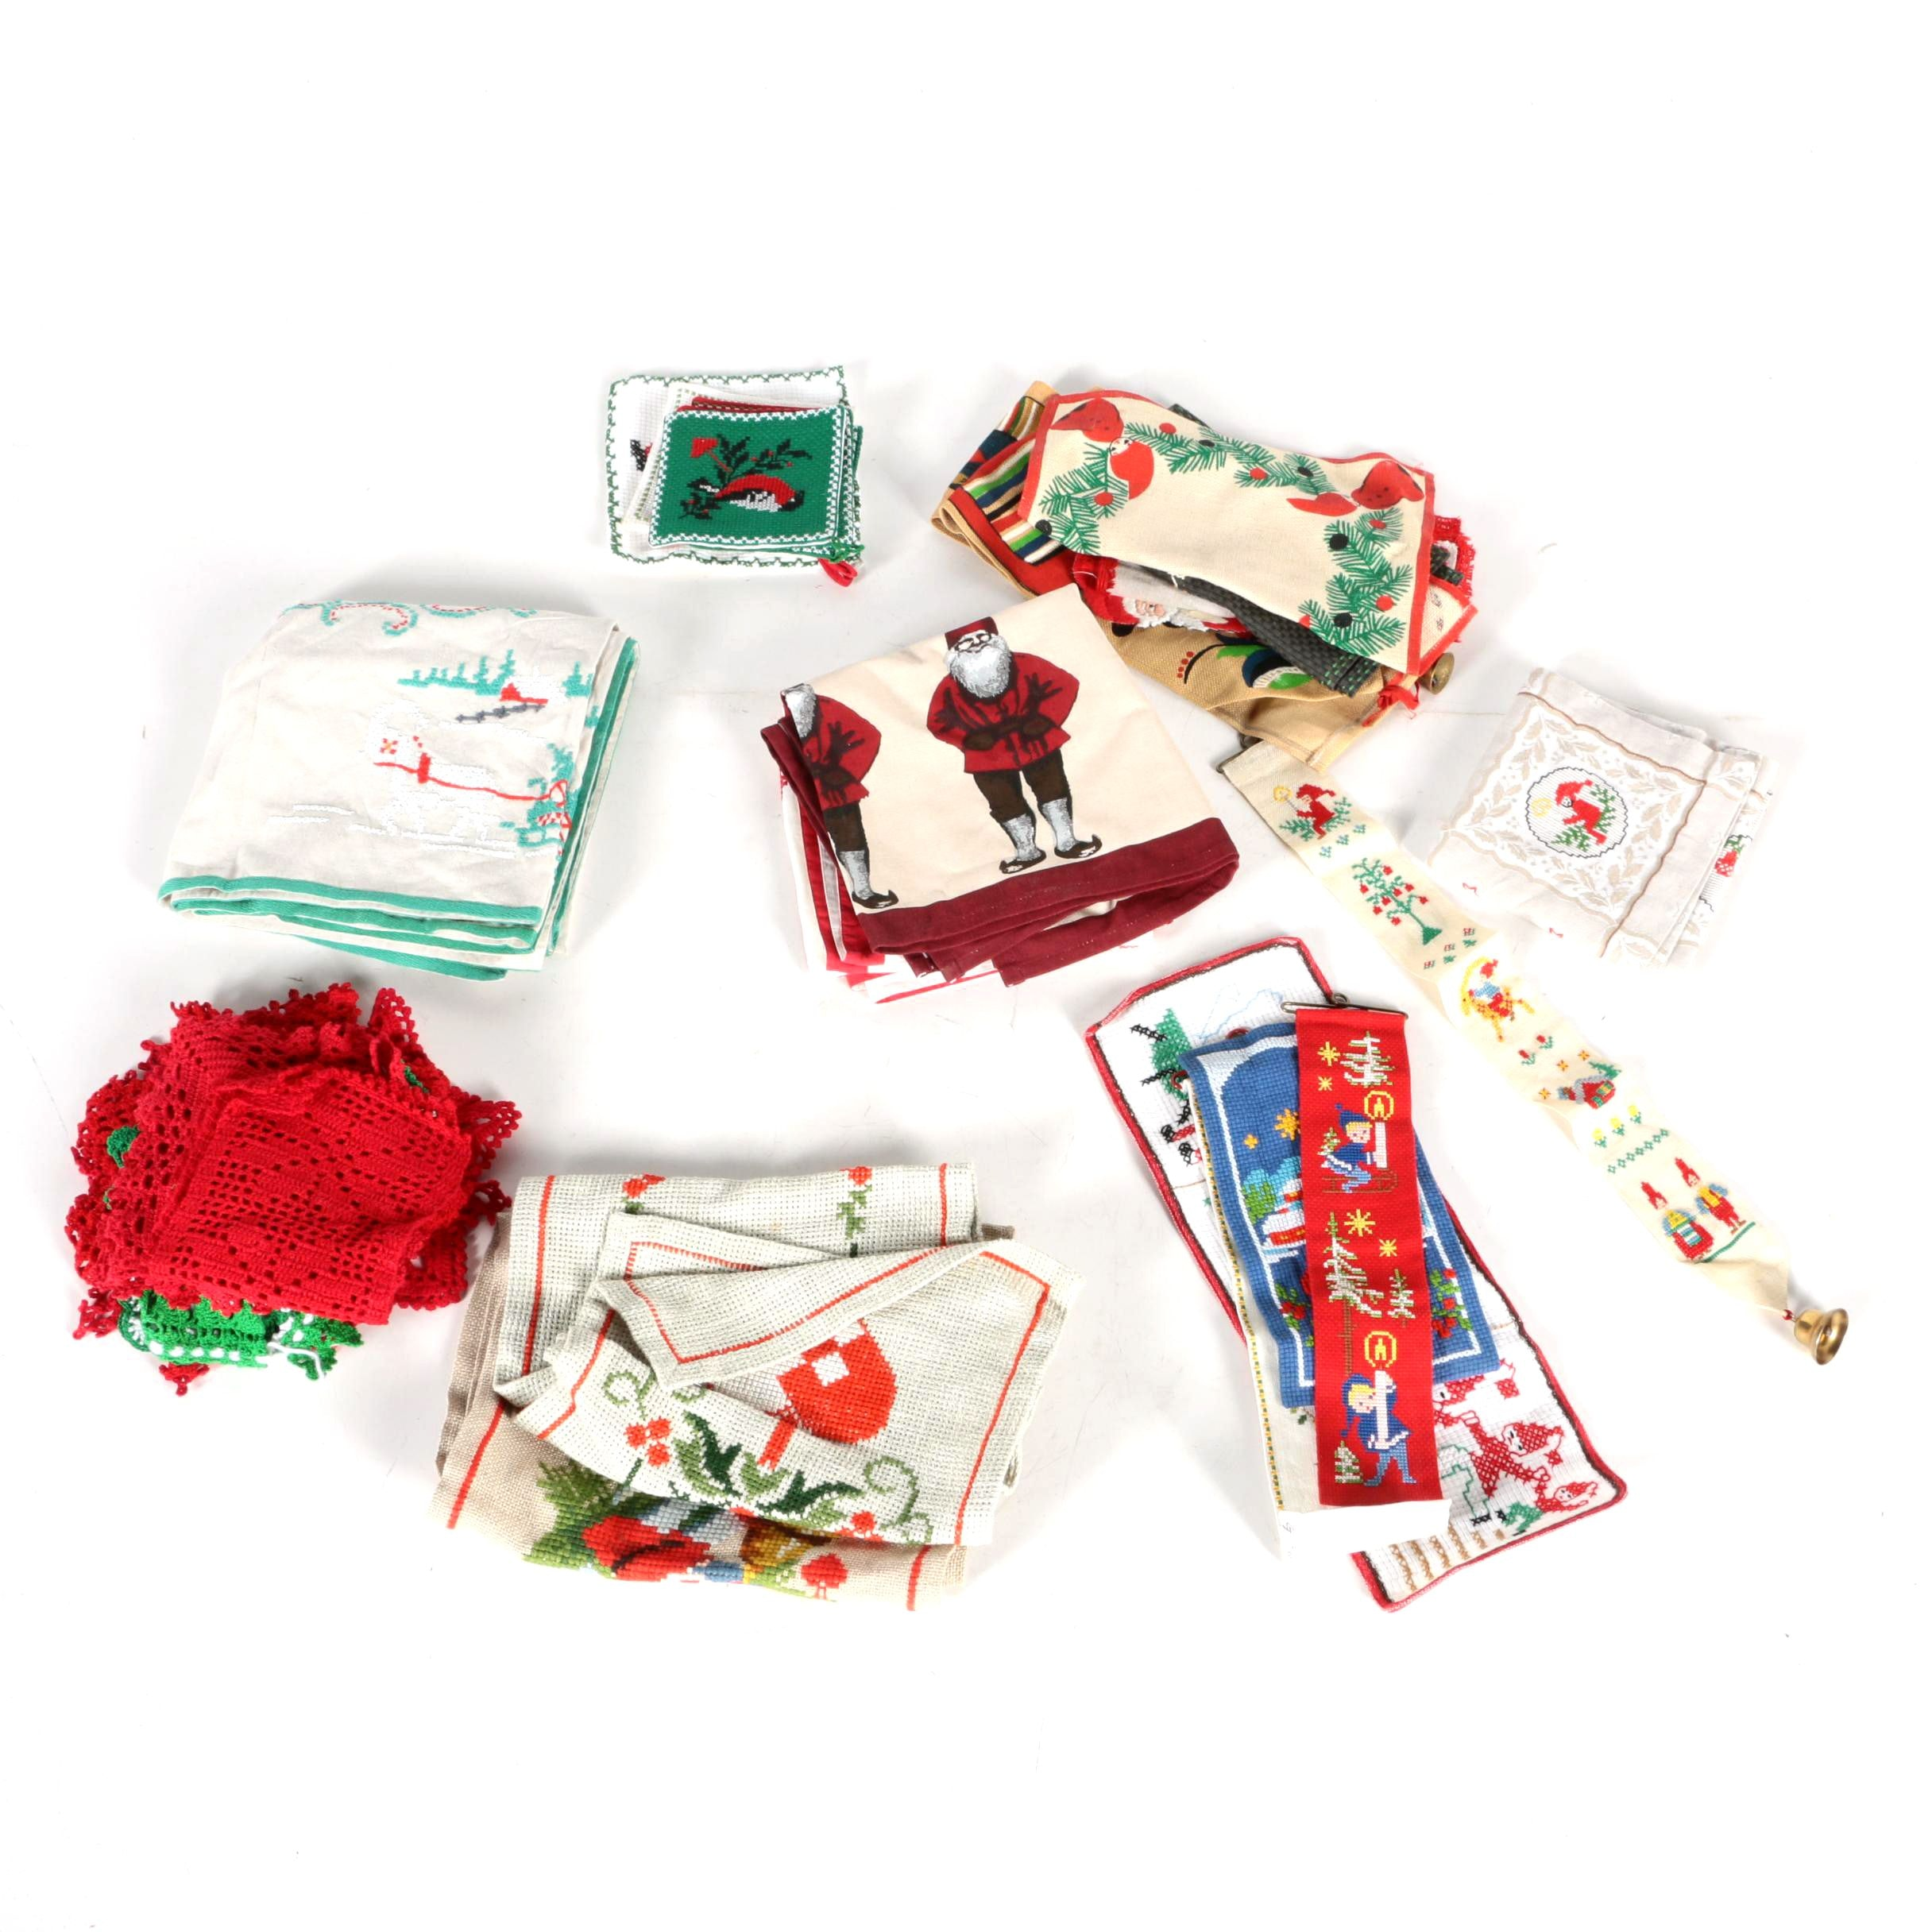 Vintage Christmas Themed Table Linens Including Crochet